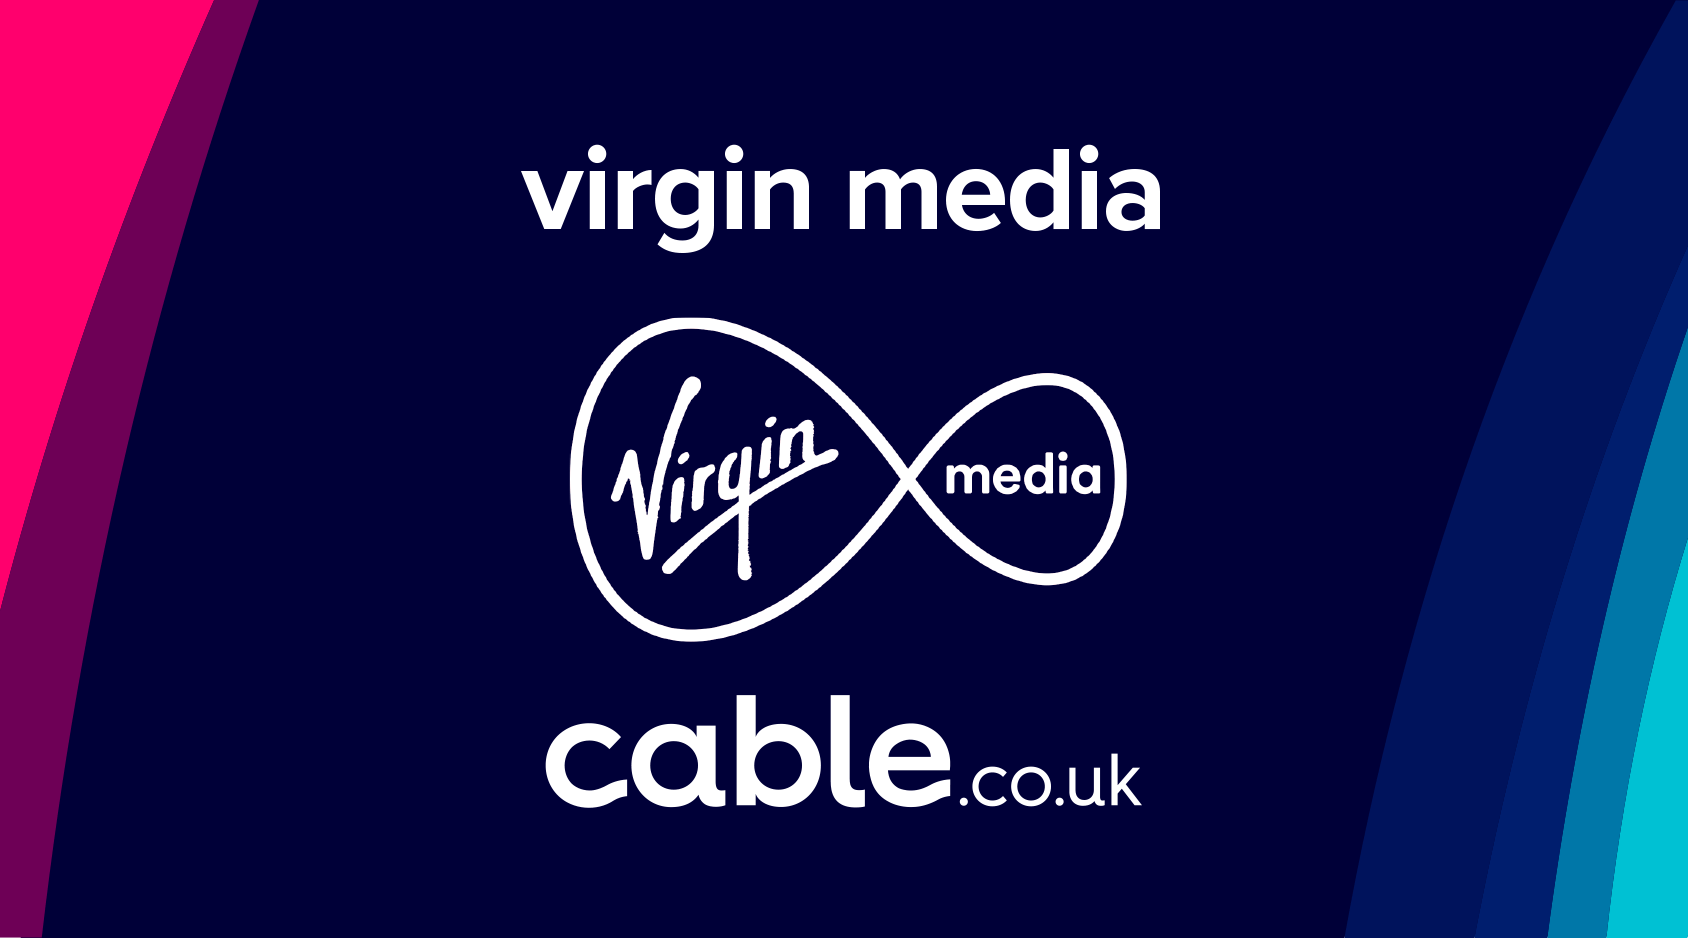 Best Virgin Media deals – Cable.co.uk